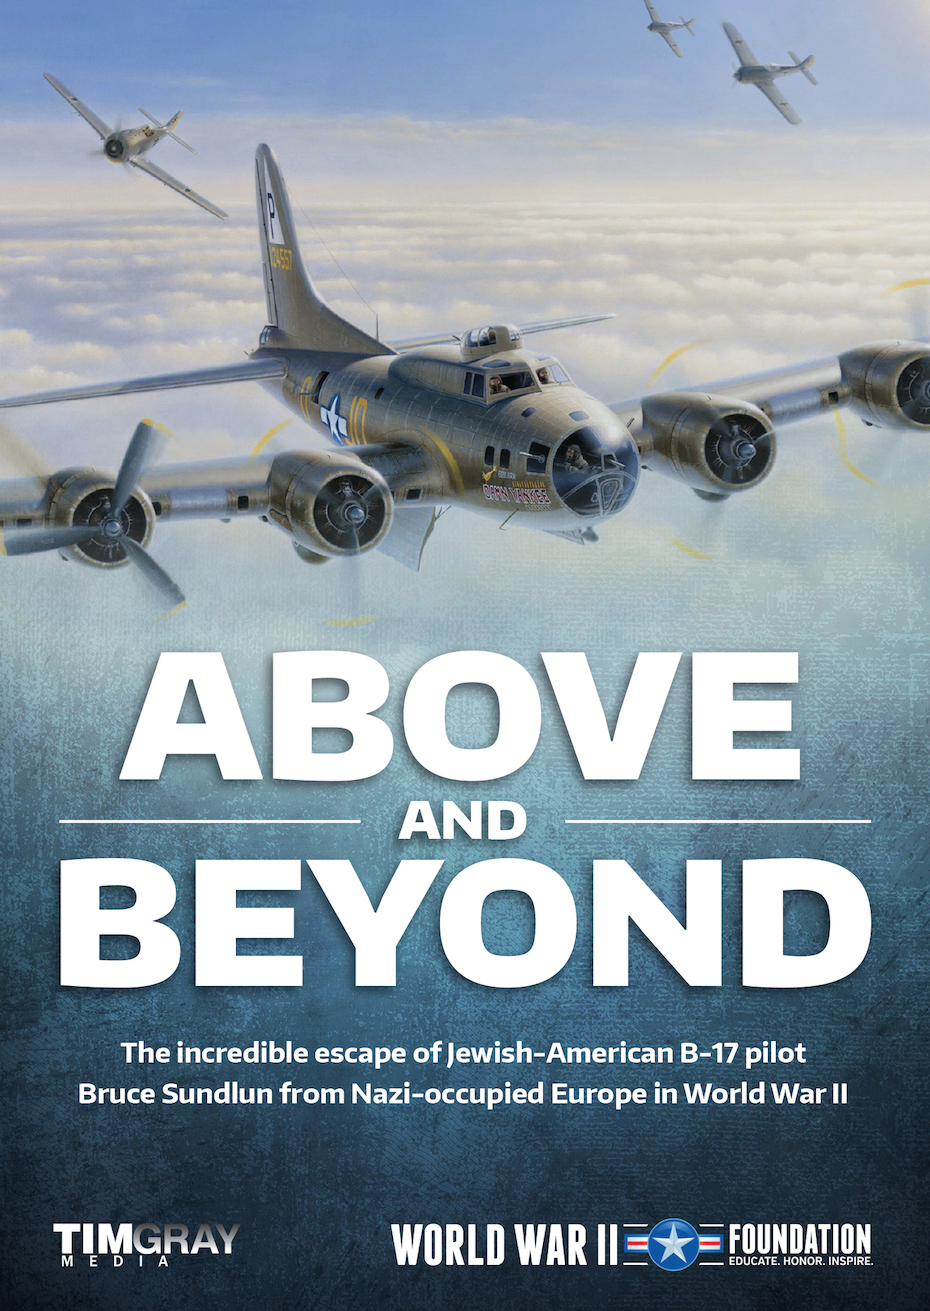 World war ii foundation above and beyond for Above and beyond